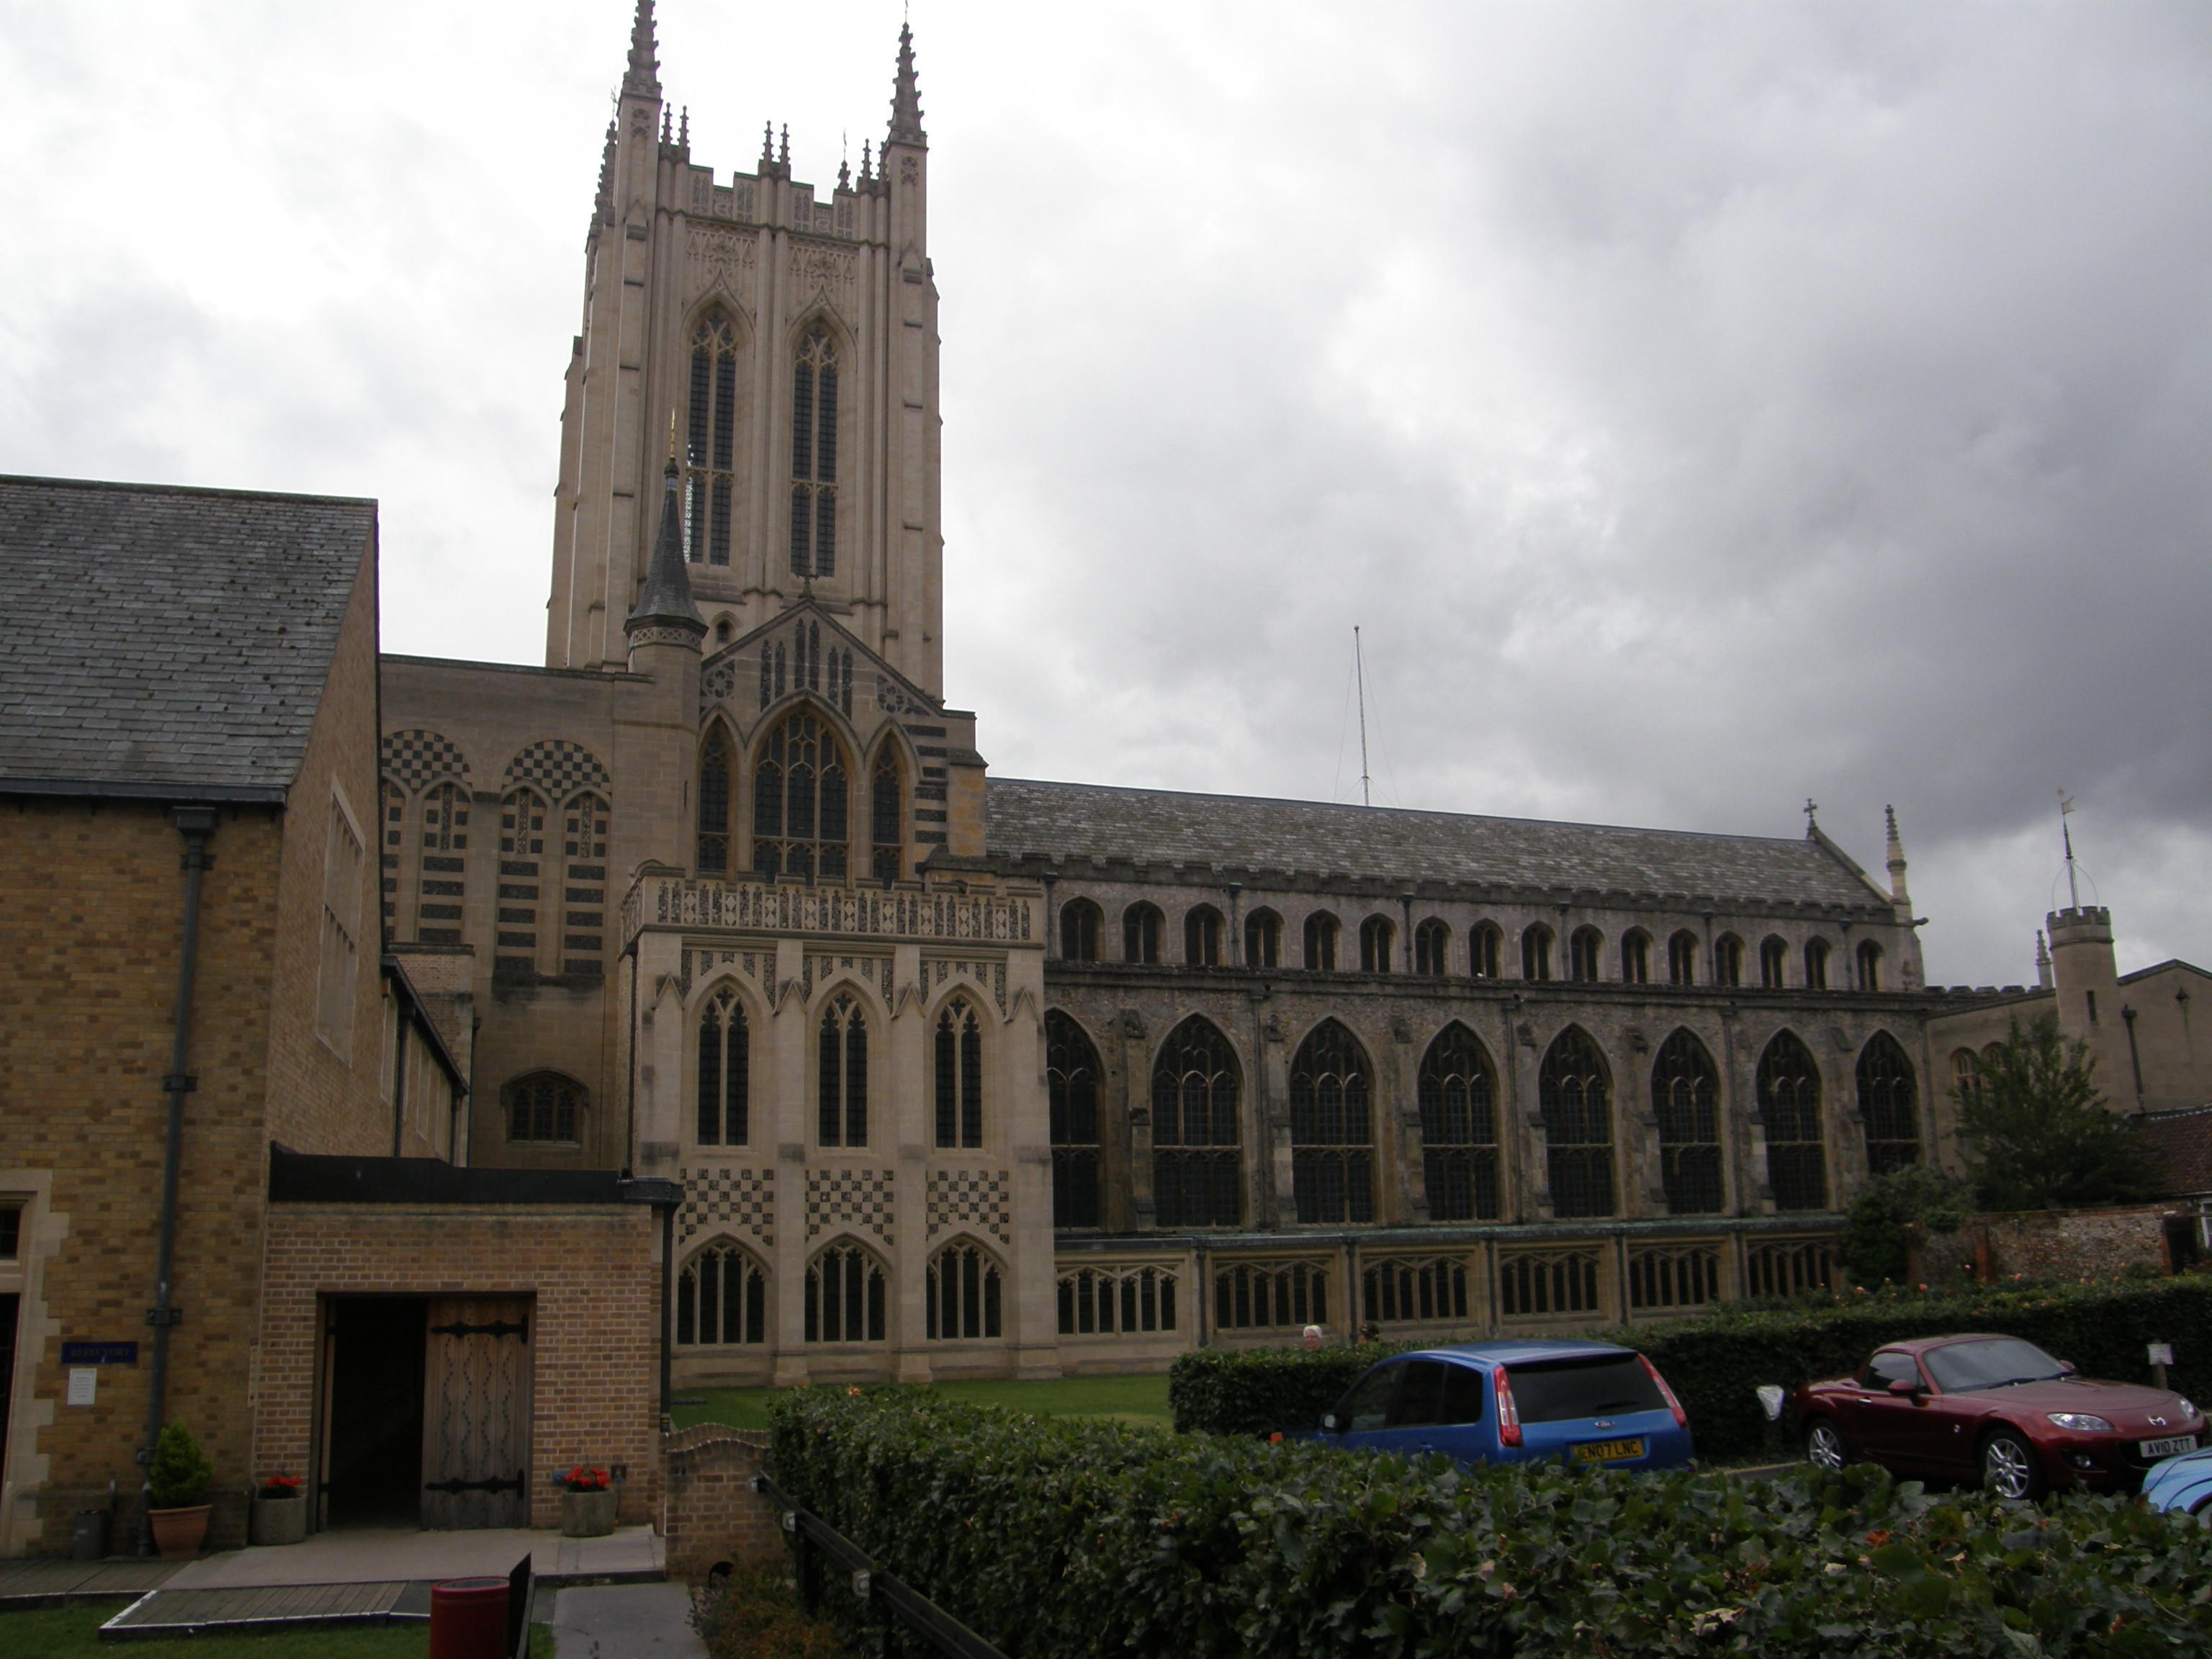 St. Edmundsbury Cathedral seen from the Abbey Garden gate